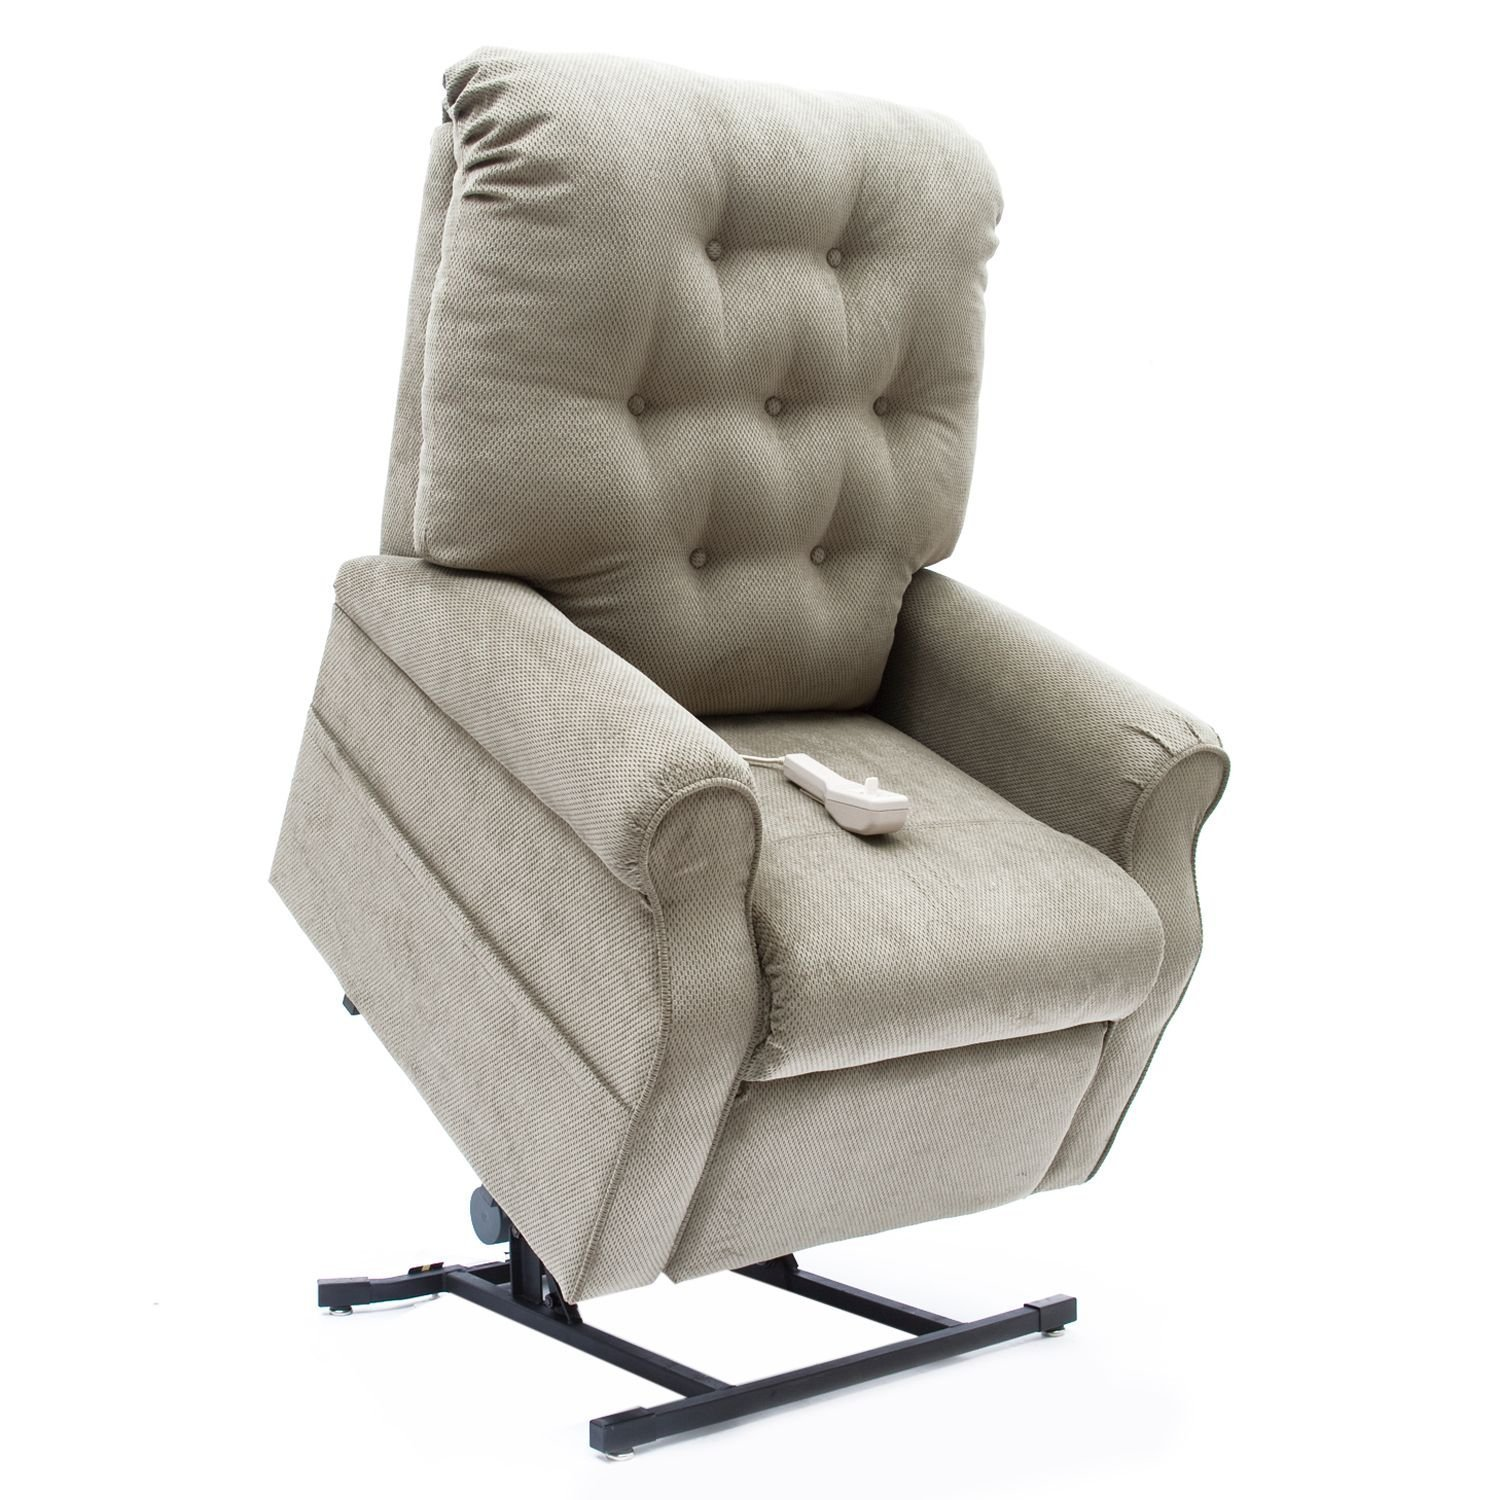 Chair Lifts For Seniors 5 Of The Best Lift Chairs For The Elderly Costculator